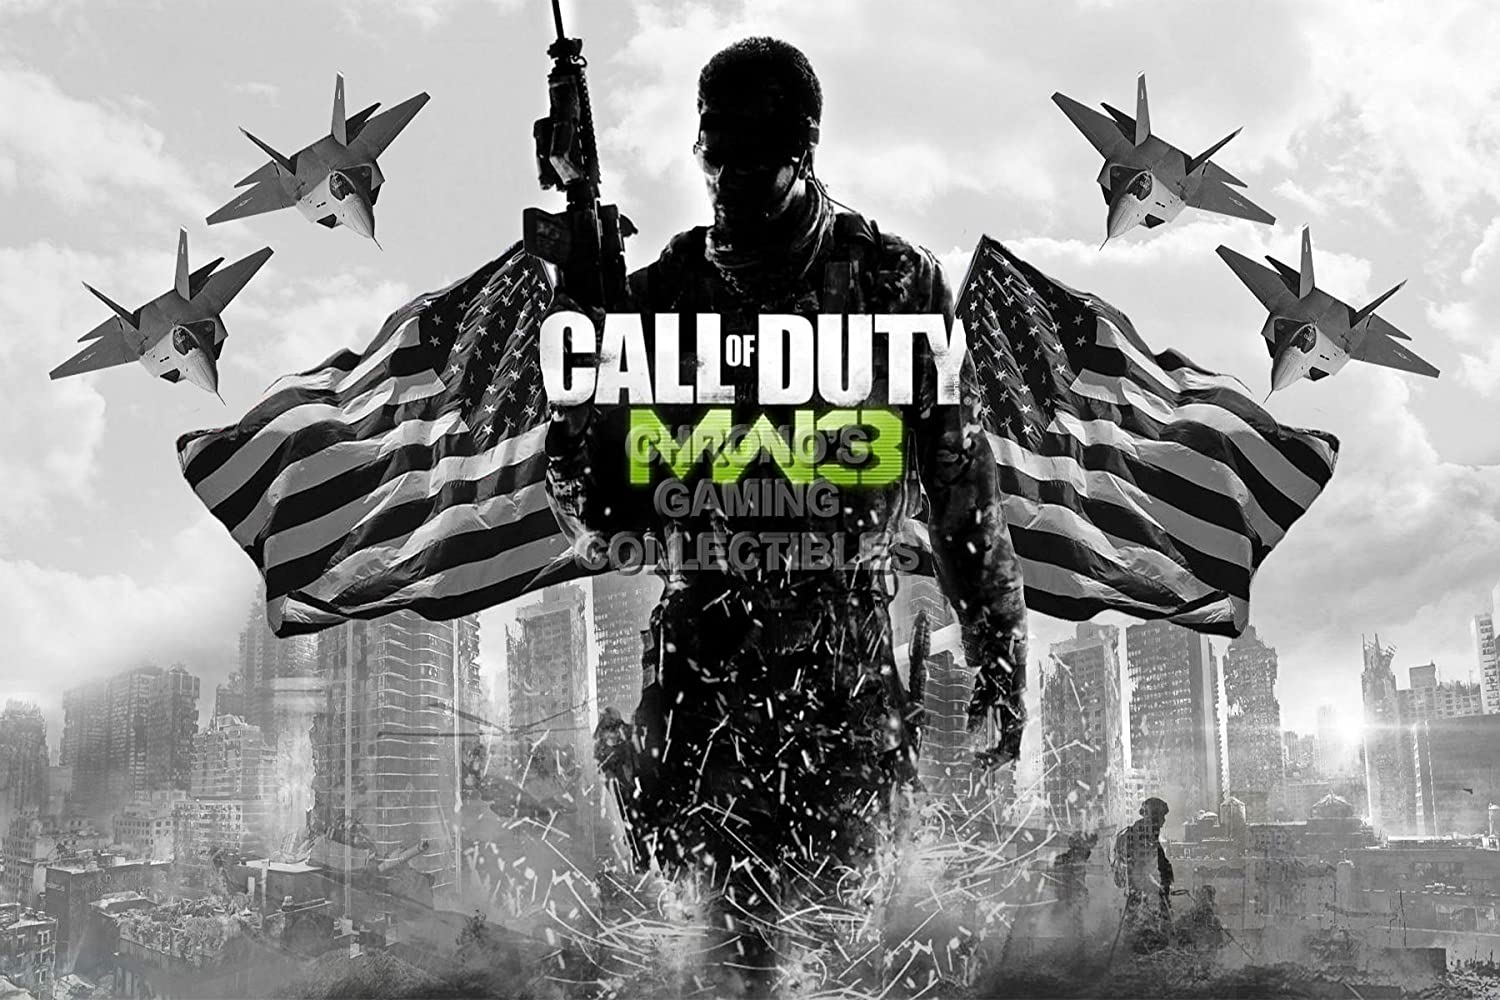 "PrimePoster - Call of Duty Modern Warfare 3 COD Poster Glossy Finish Made in USA - YCOD009 (24"" x 36"" (61cm x 91.5cm))"